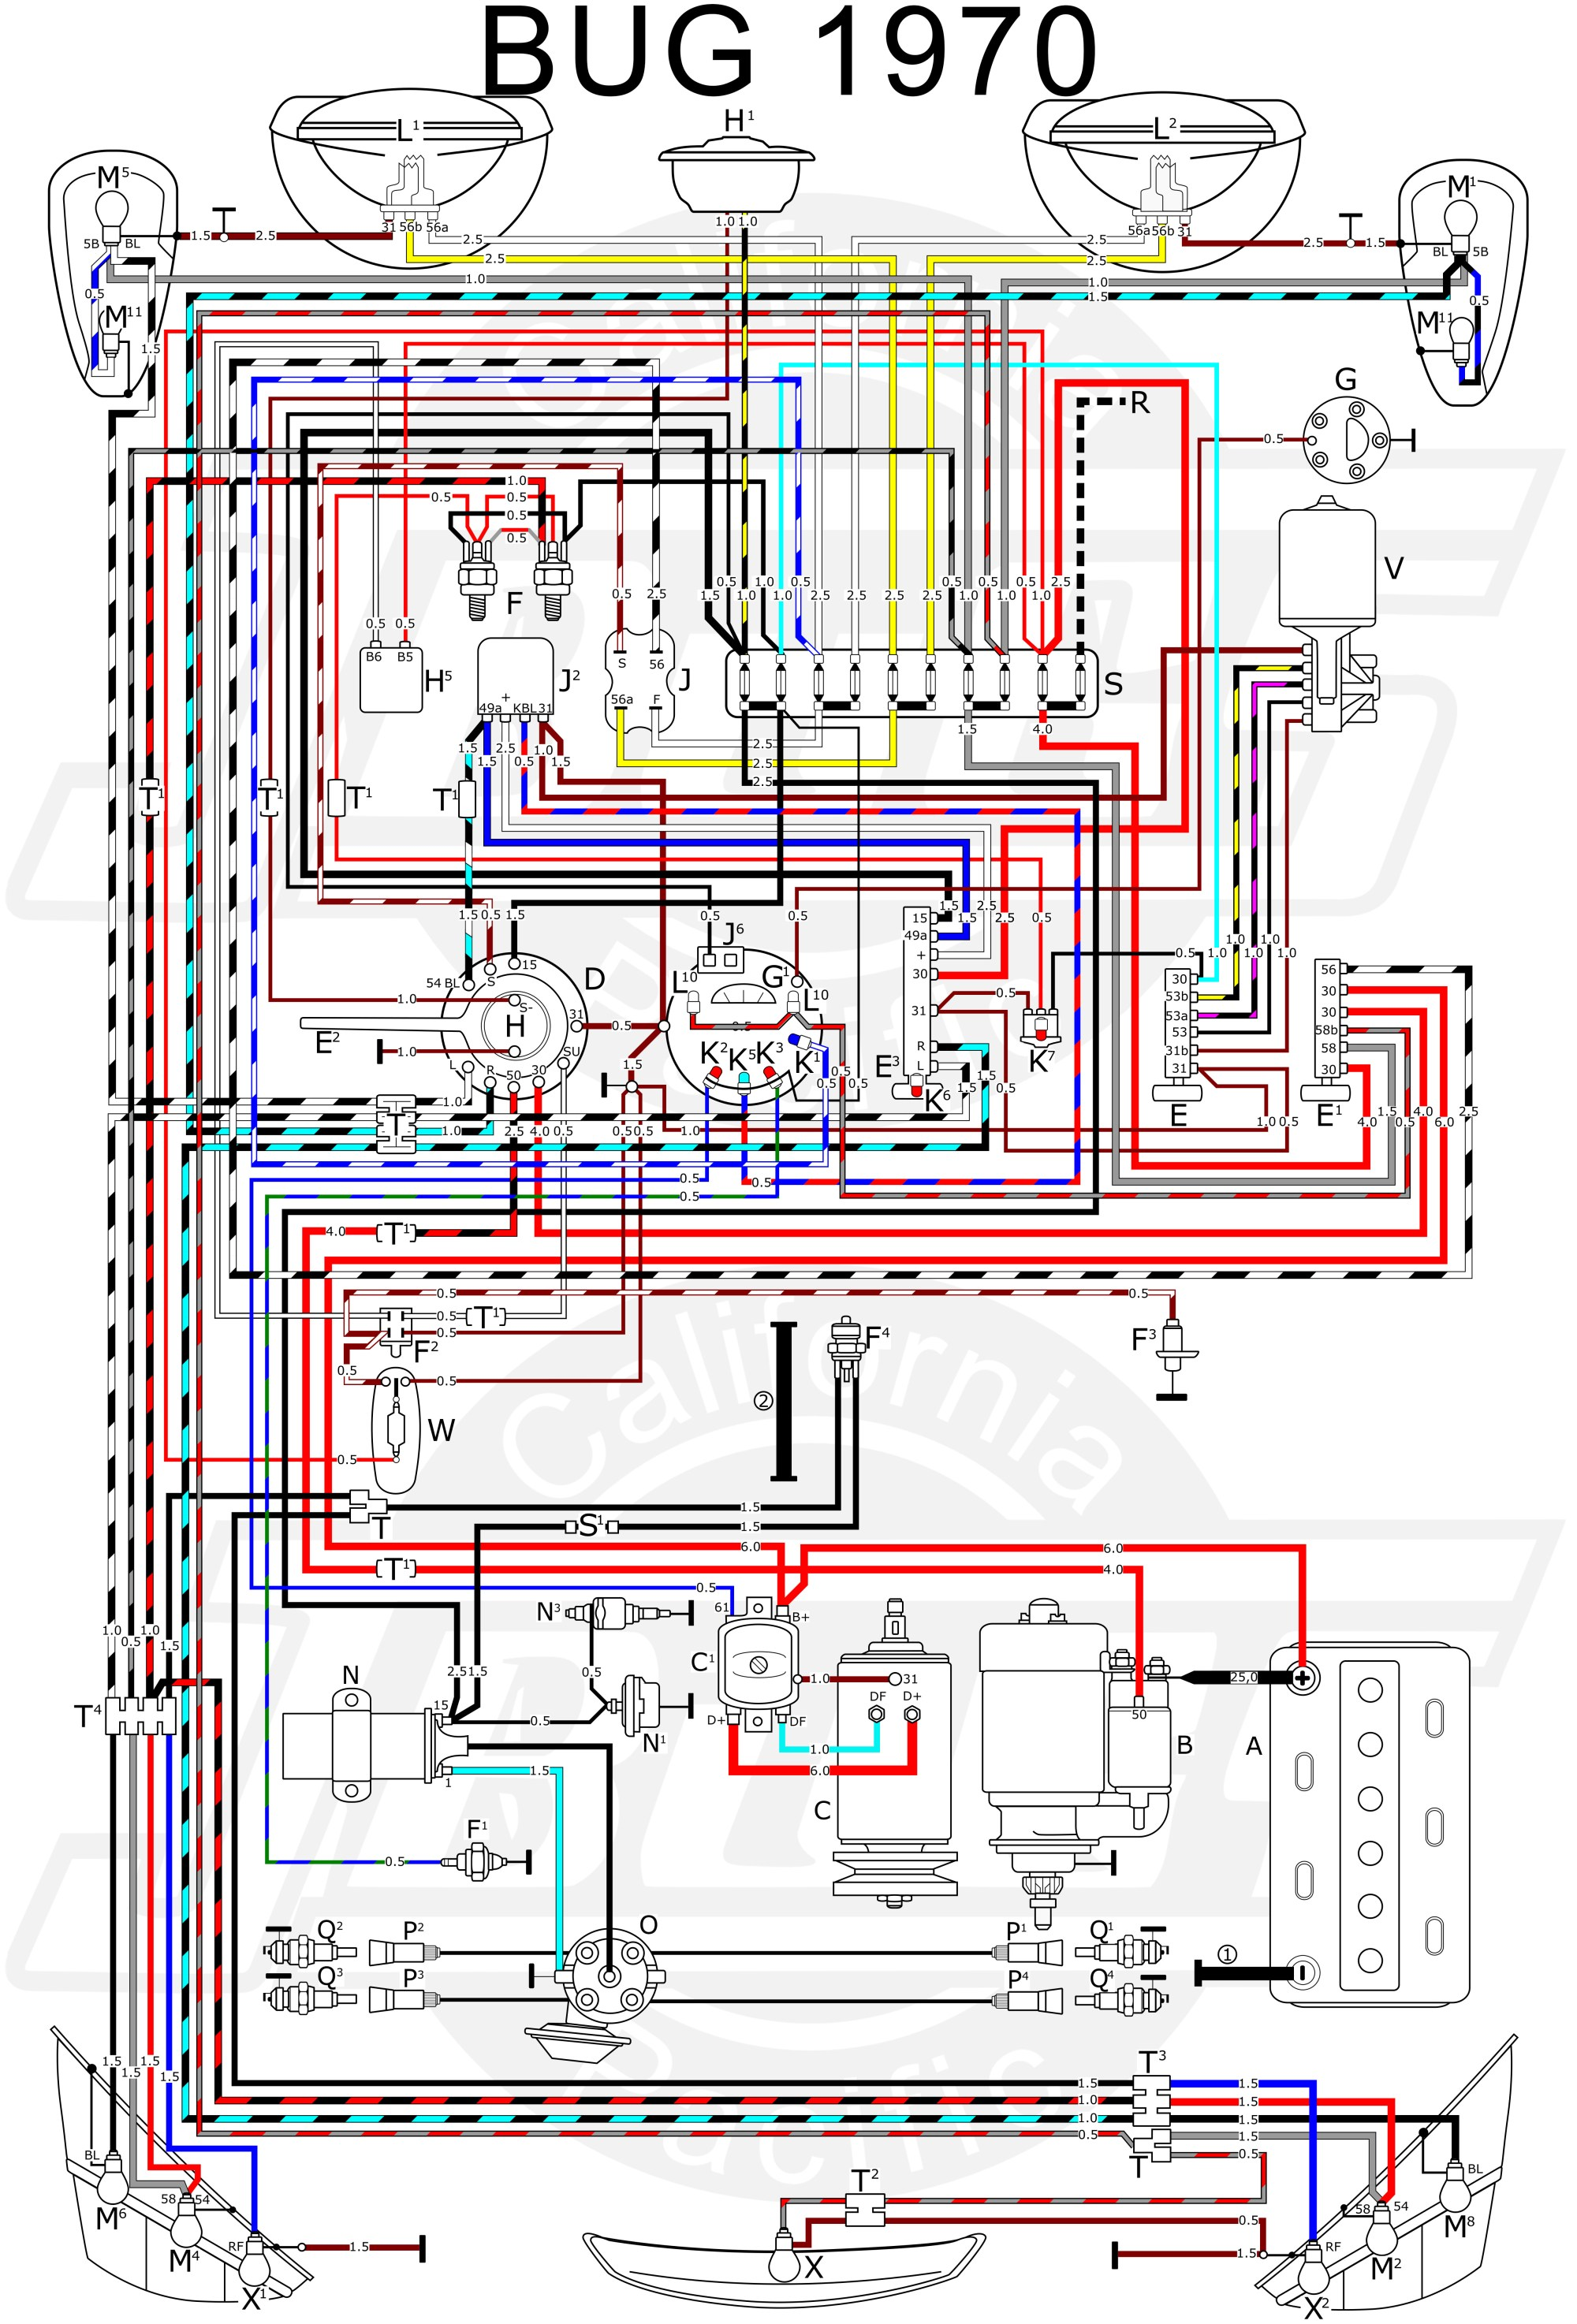 hight resolution of 1970 vw bug distributor wiring wiring diagram option coil wiring diagram for 1970 volkswagen